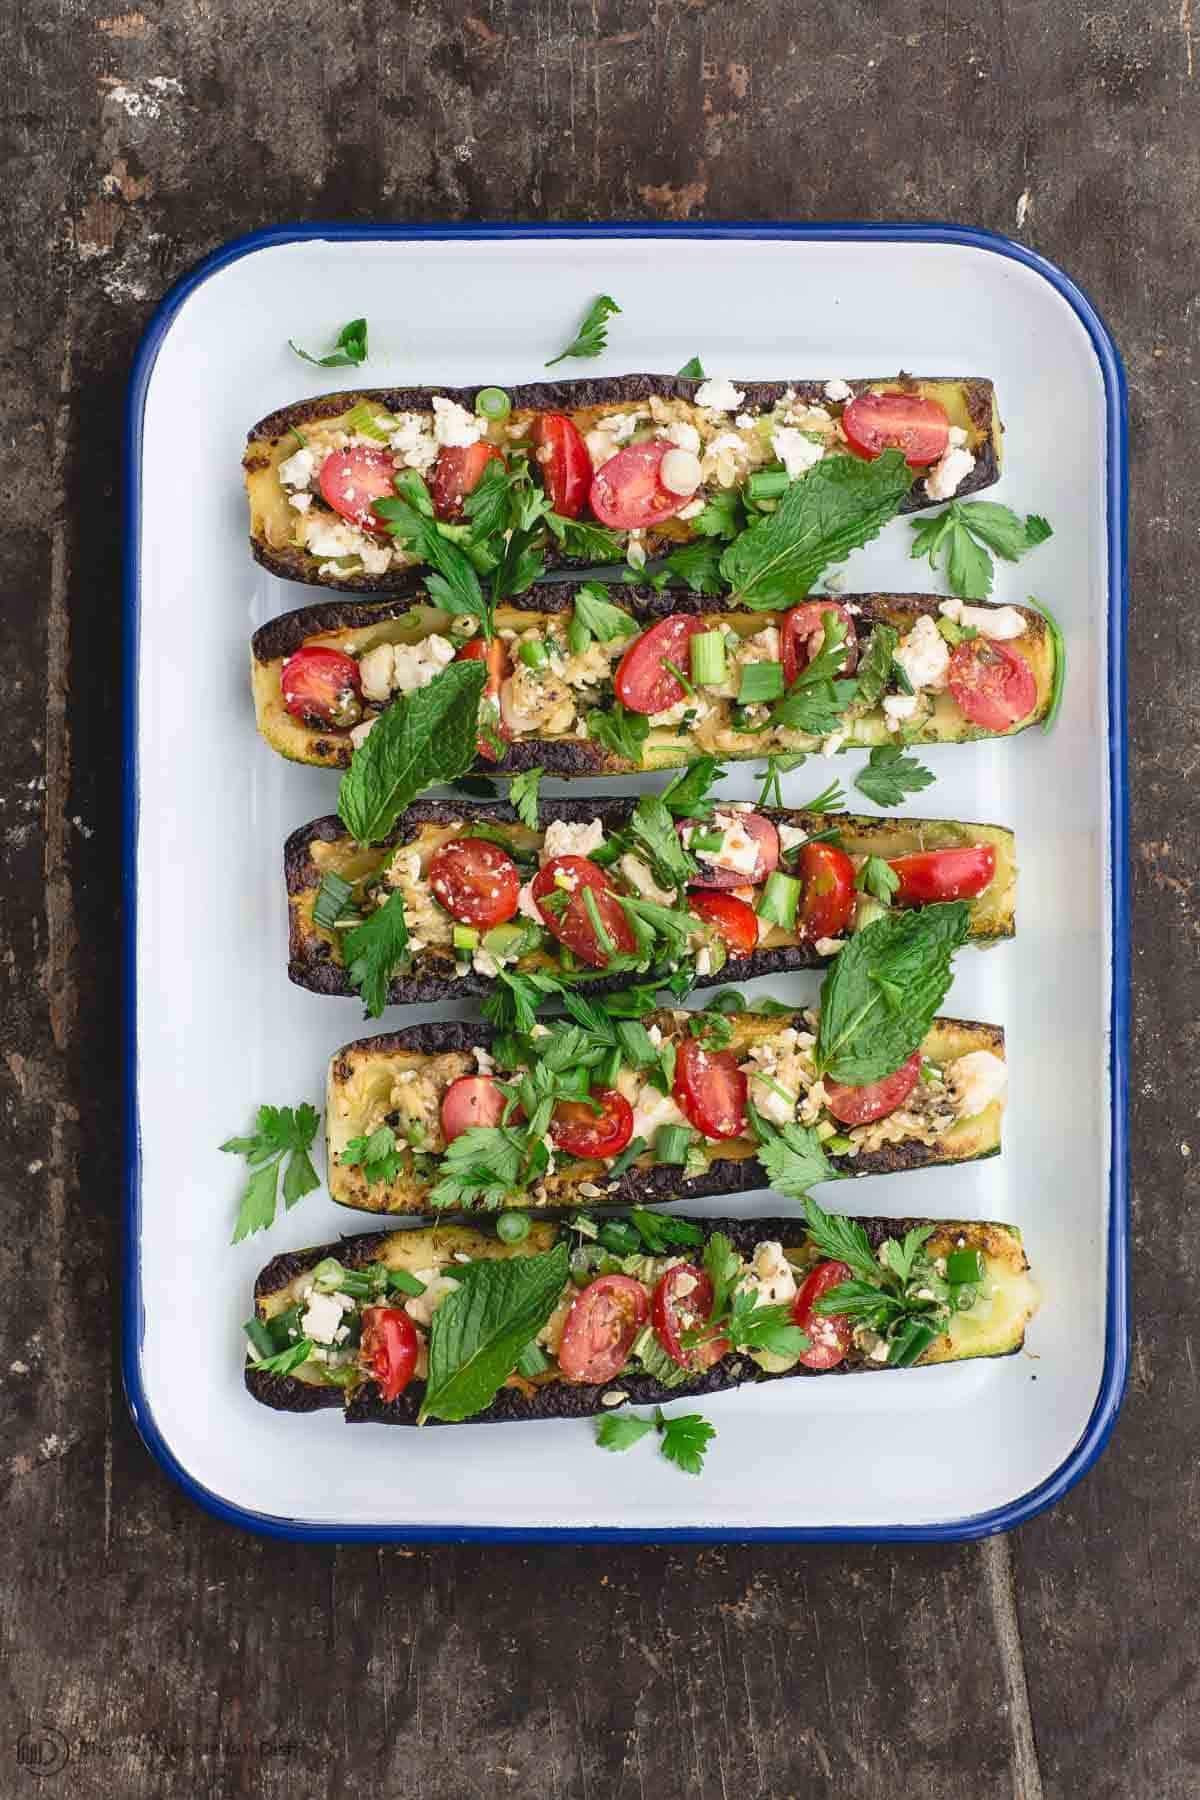 Grilled zucchini boats filled with tomato, feta, and fresh herb mixture